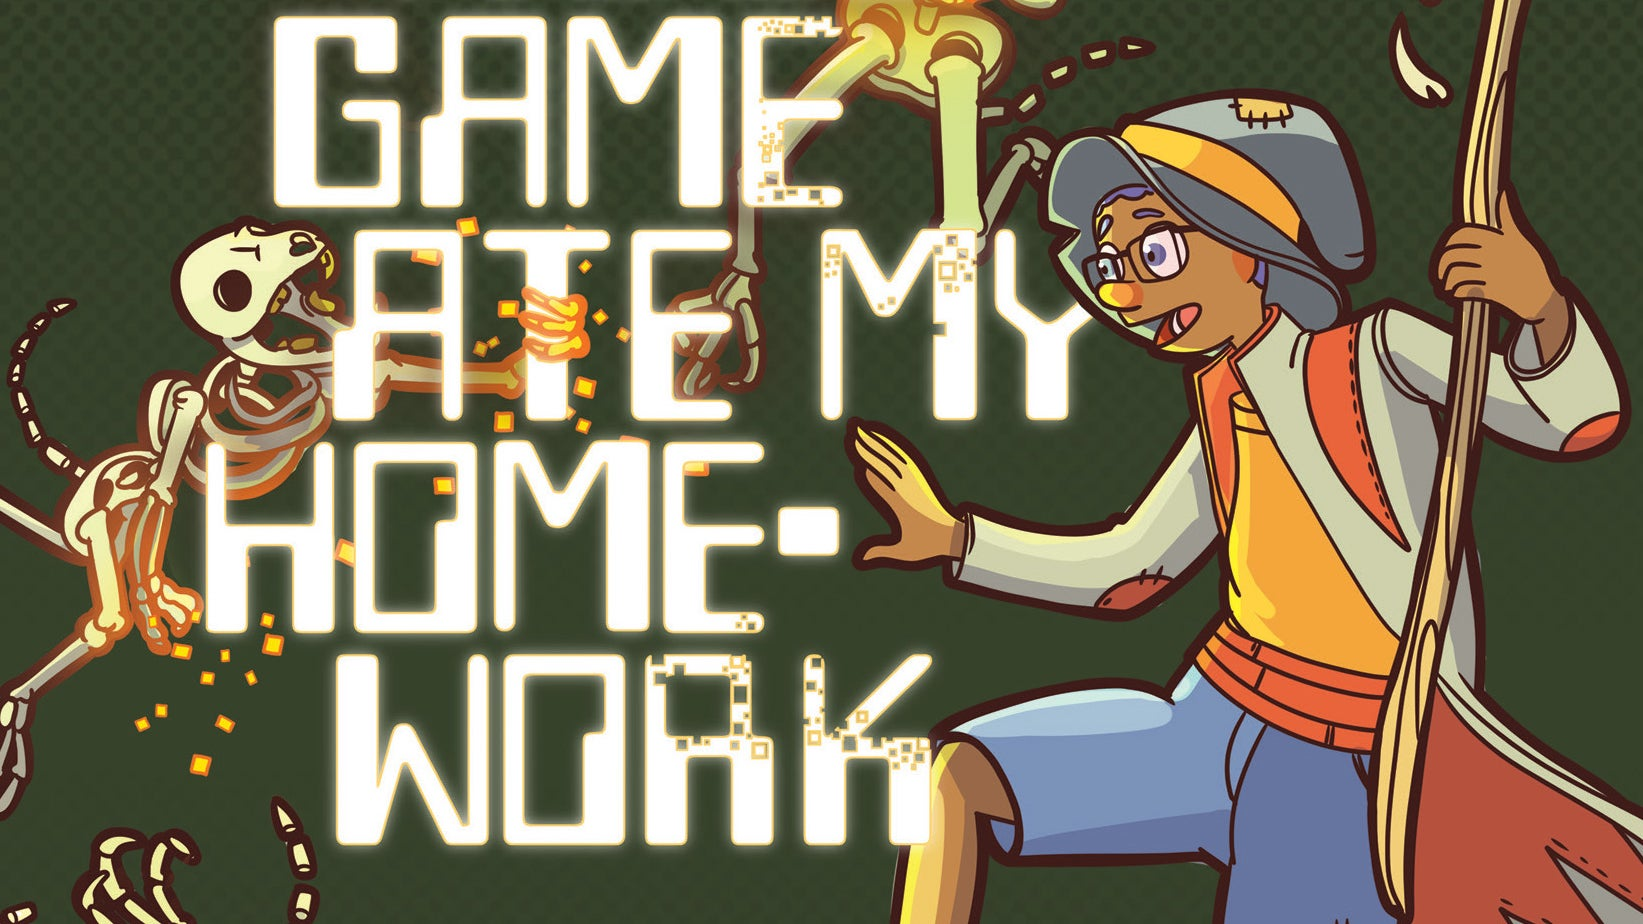 My Video Game Ate My Homework Is A Sweet Graphic Novel About Games And Growing Up